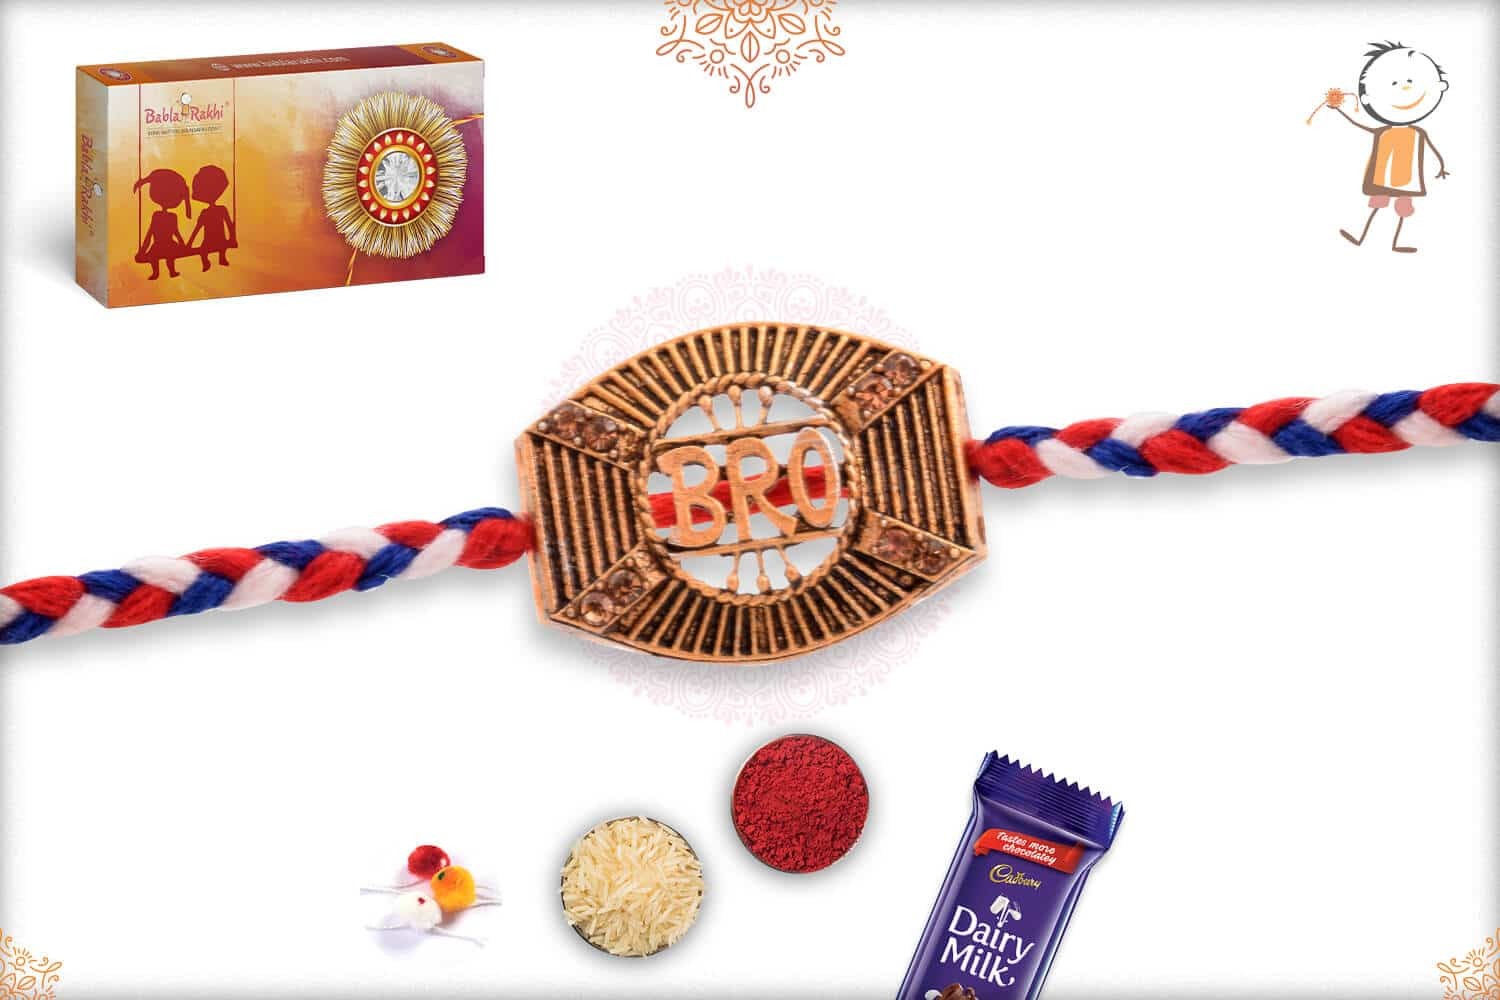 Bro Rakhi with Red-Blue Handcrafted Thread 2